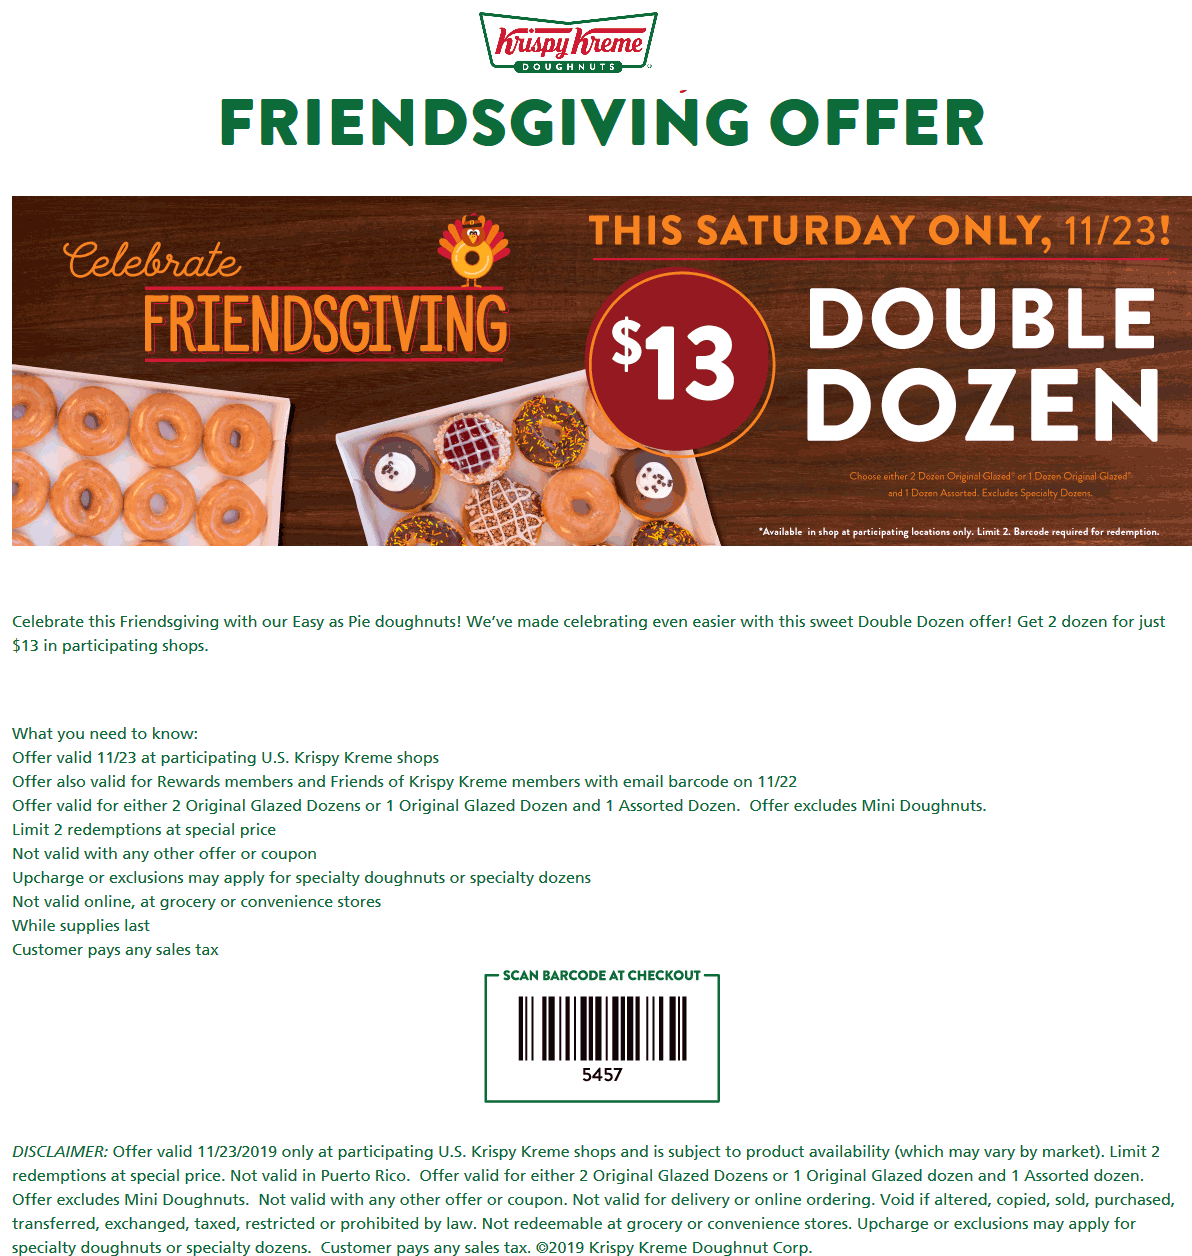 Krispy Kreme Coupon January 2020 2 dozen for $13 Saturday at Krispy Kreme doughnuts